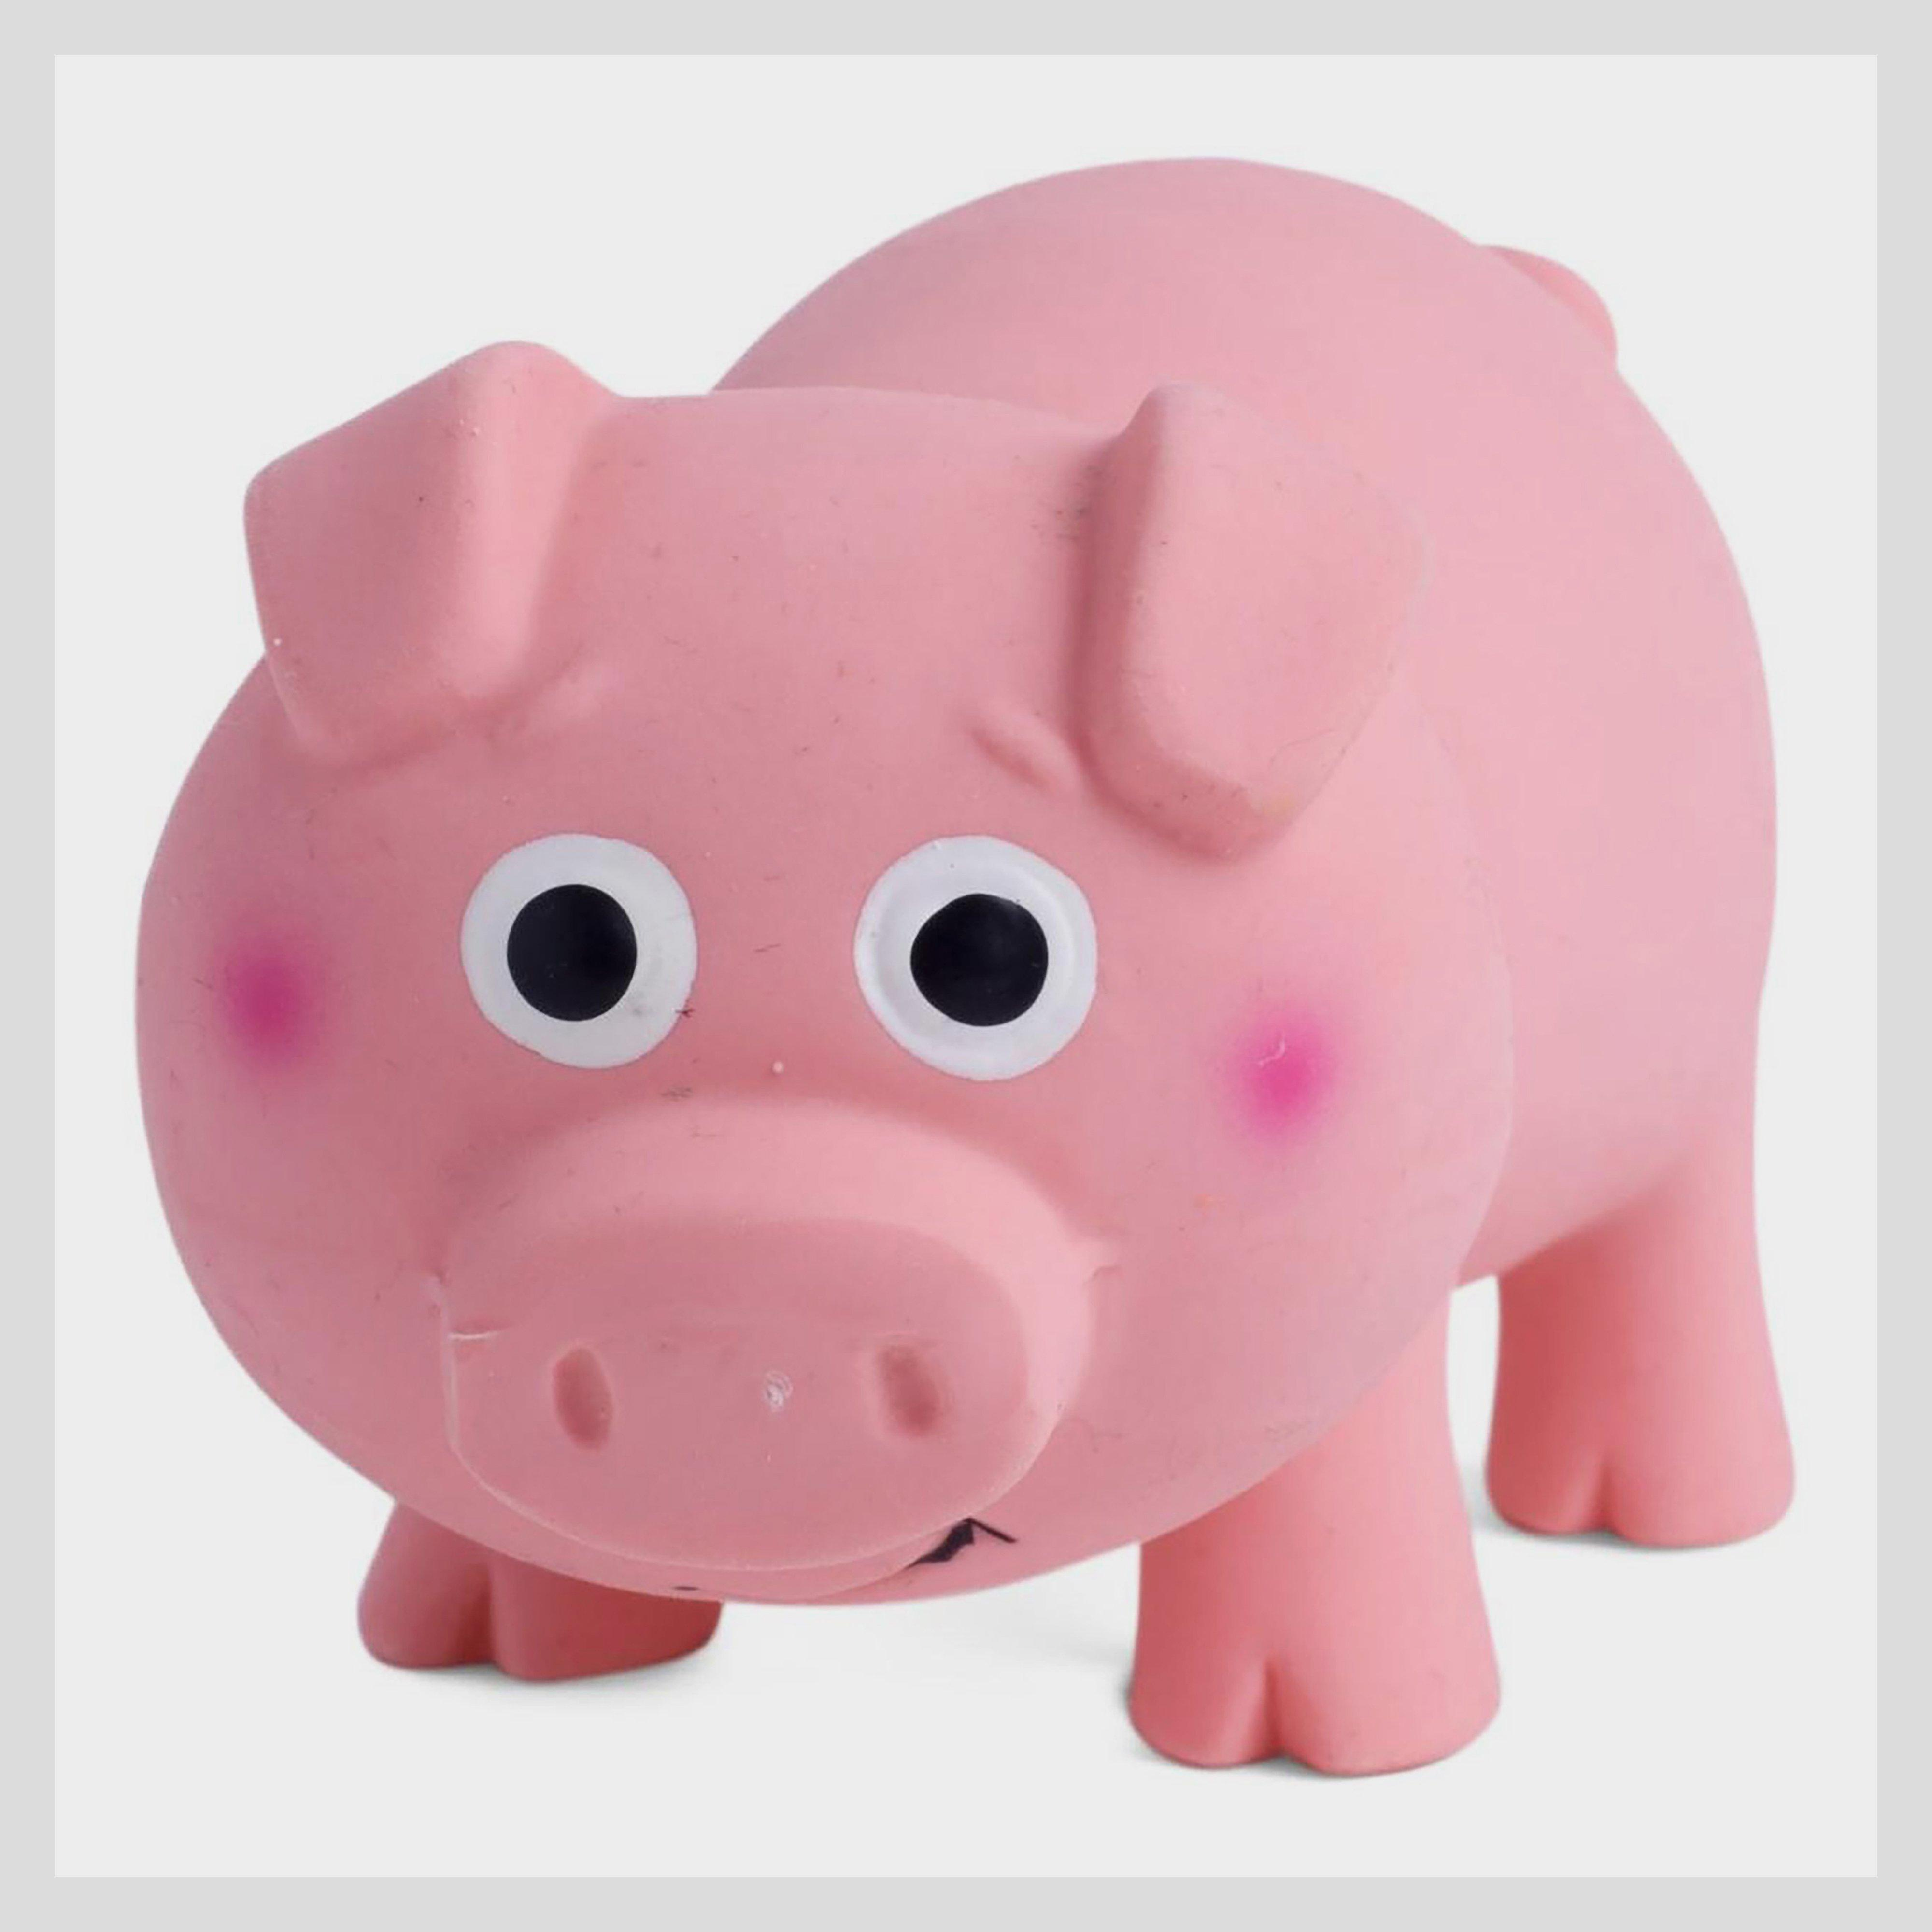 Image of Petface Latex Oink Oink Pig - Pink/Pink, PINK/PINK